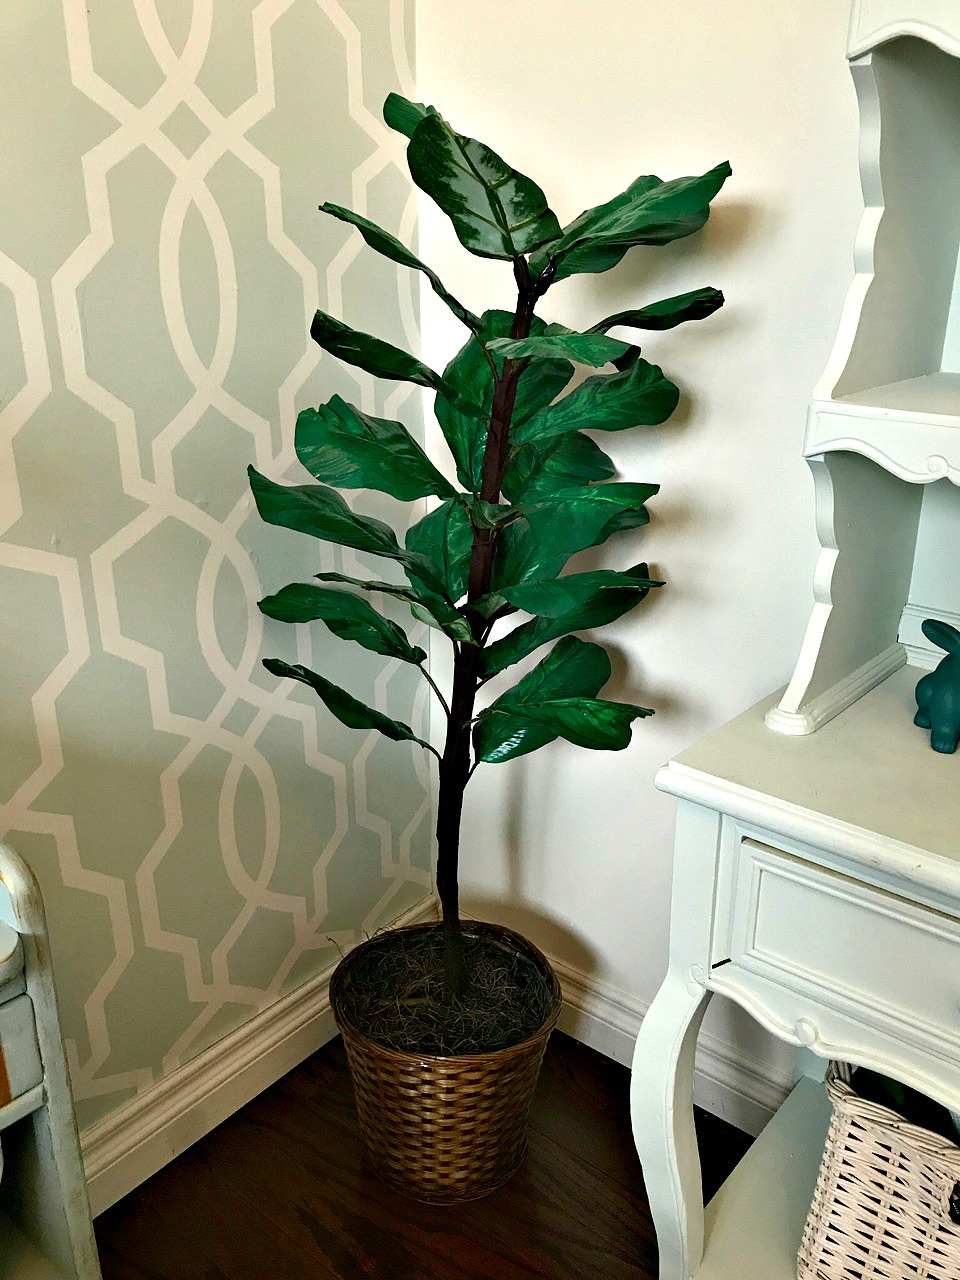 diy fiddle fig tree from a cheap garage sale fake plant see all the details